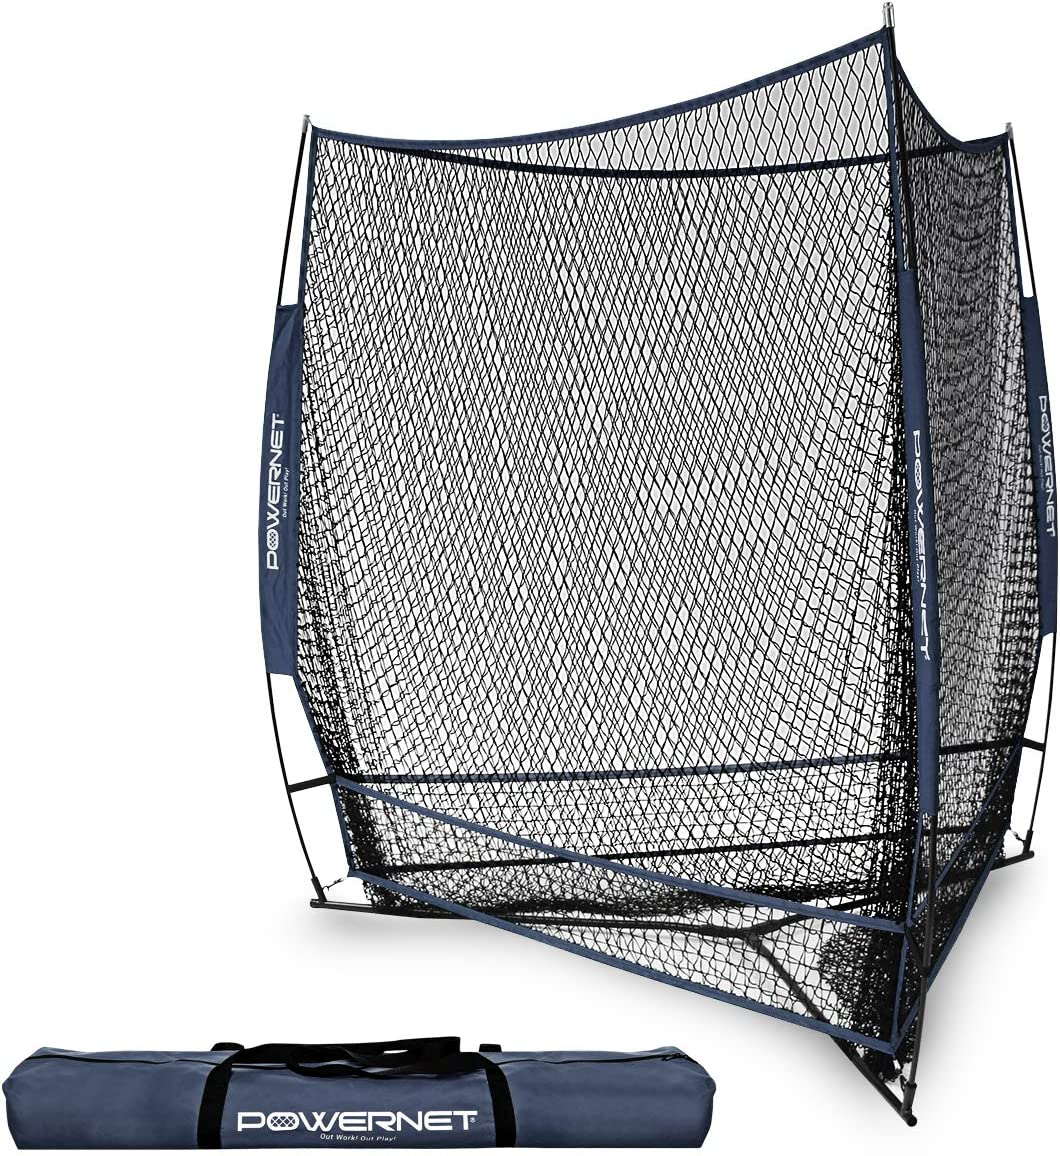 PowerNet Triple Threat Baseball Training Net 3 Way 7 x 7 Batting or Pitching Net Covers 147 Square Feet Pitch or Hit Into Net Train Multiple Stations at Once Player Stand in